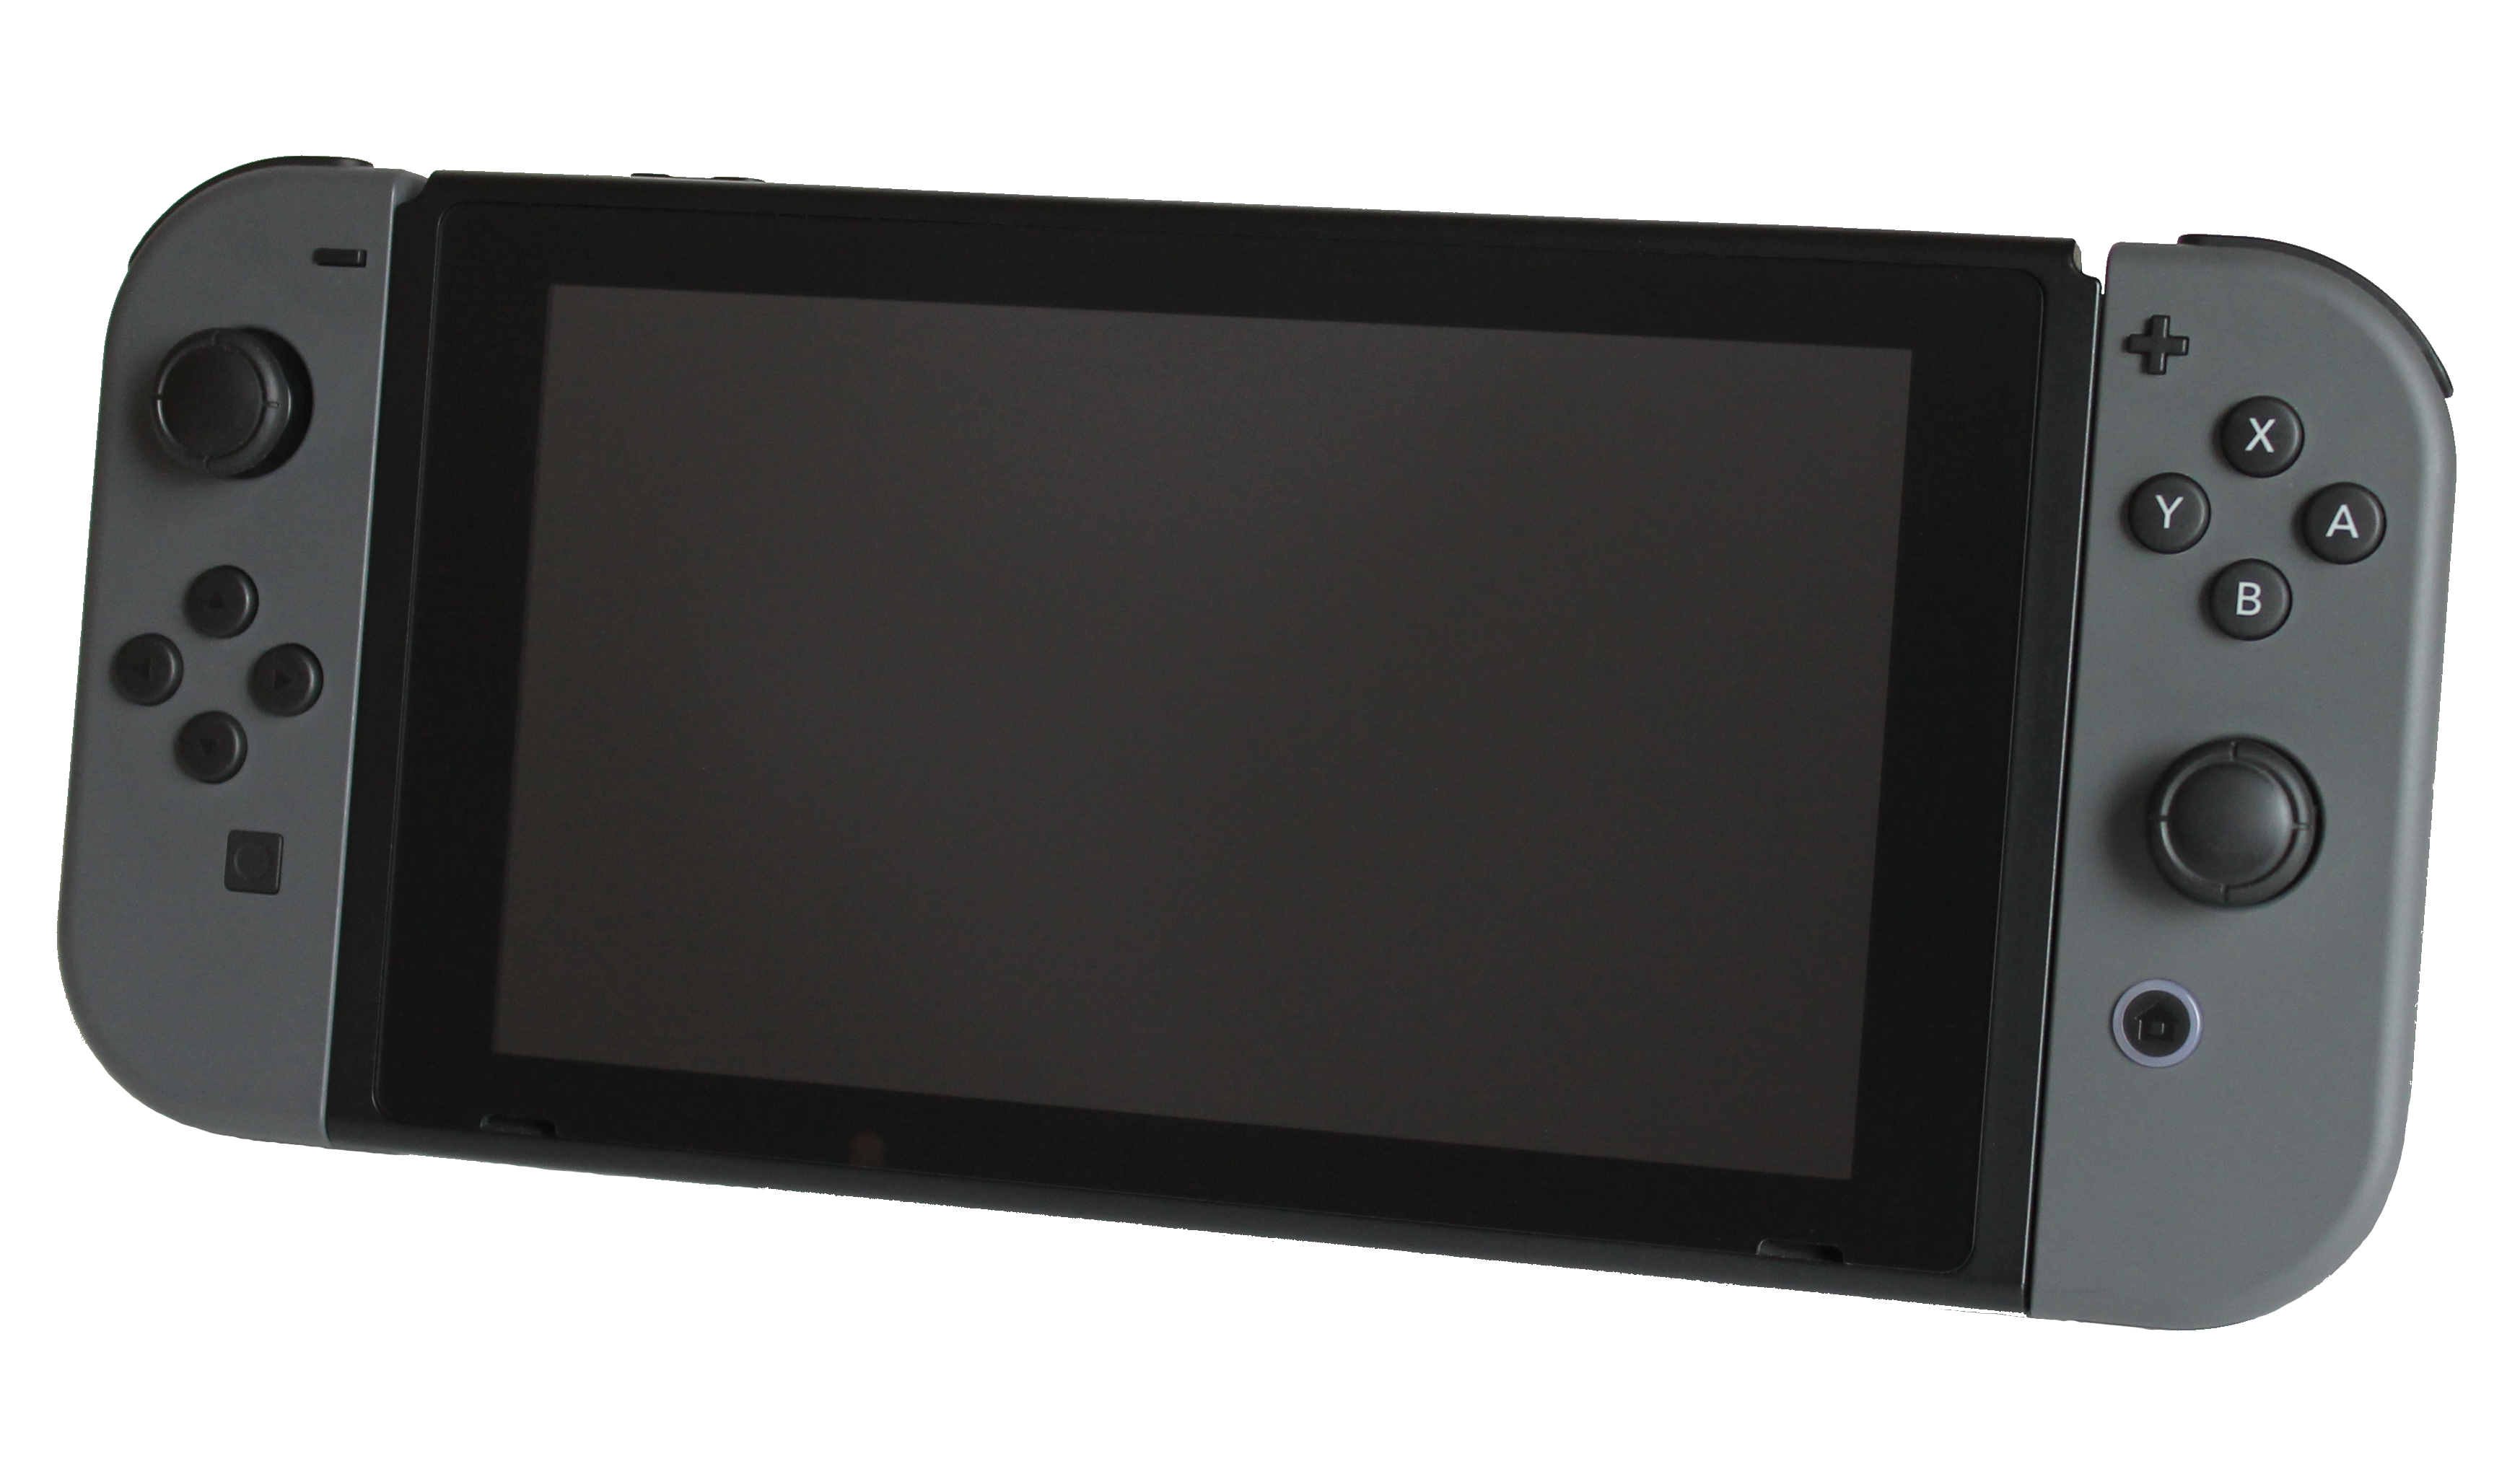 File:Nintendo Switch Portable.png.